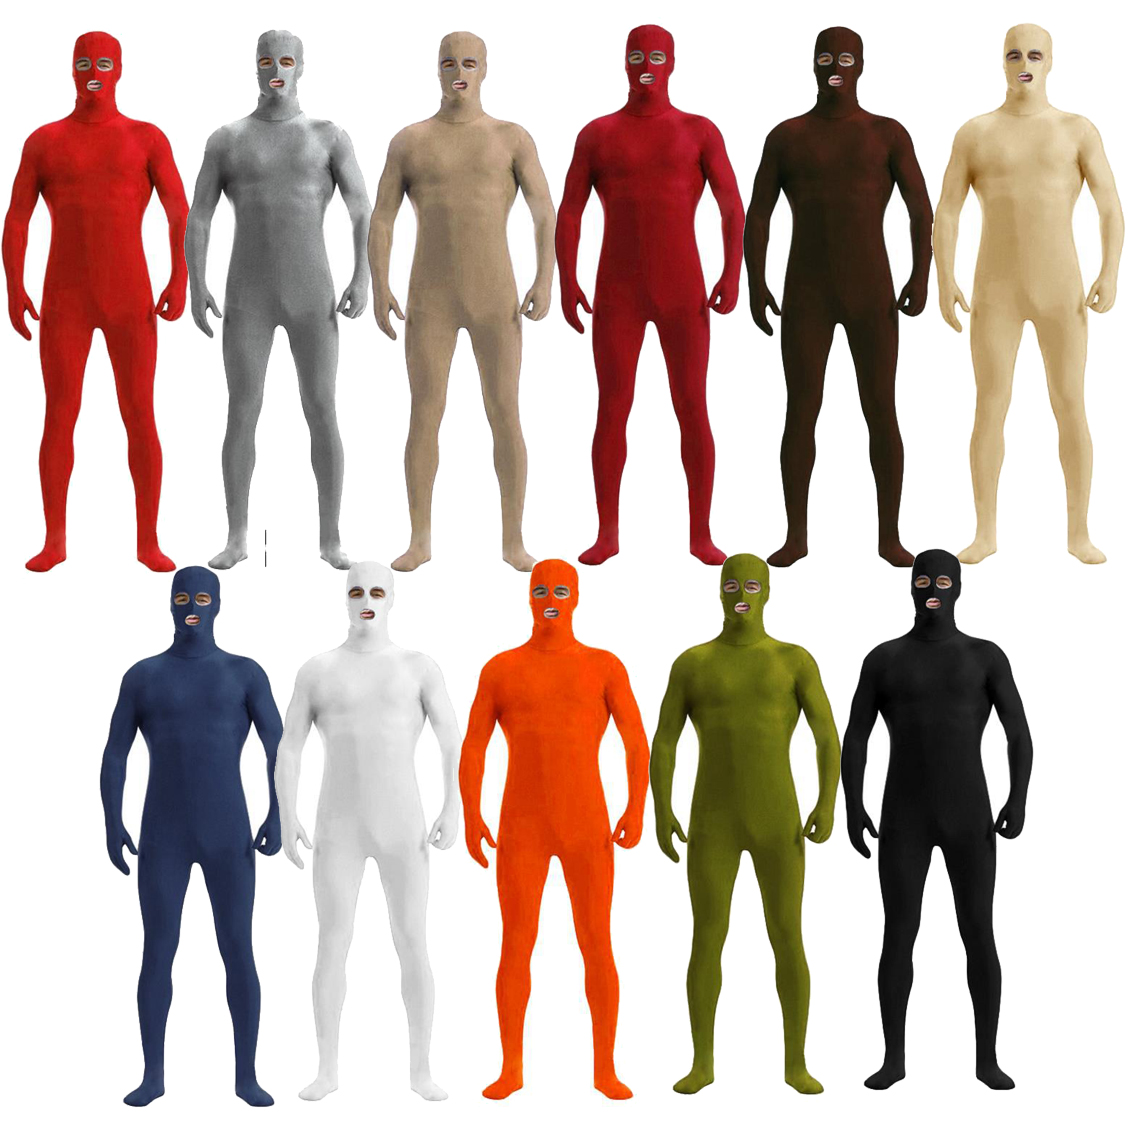 Brand New <font><b>Men</b></font> Costume Sexy Full Body <font><b>Latex</b></font> Costume Leather Jumpsuit Sexy <font><b>Catsuit</b></font> Stretch Zentai Wholesale Open eyes mouth image